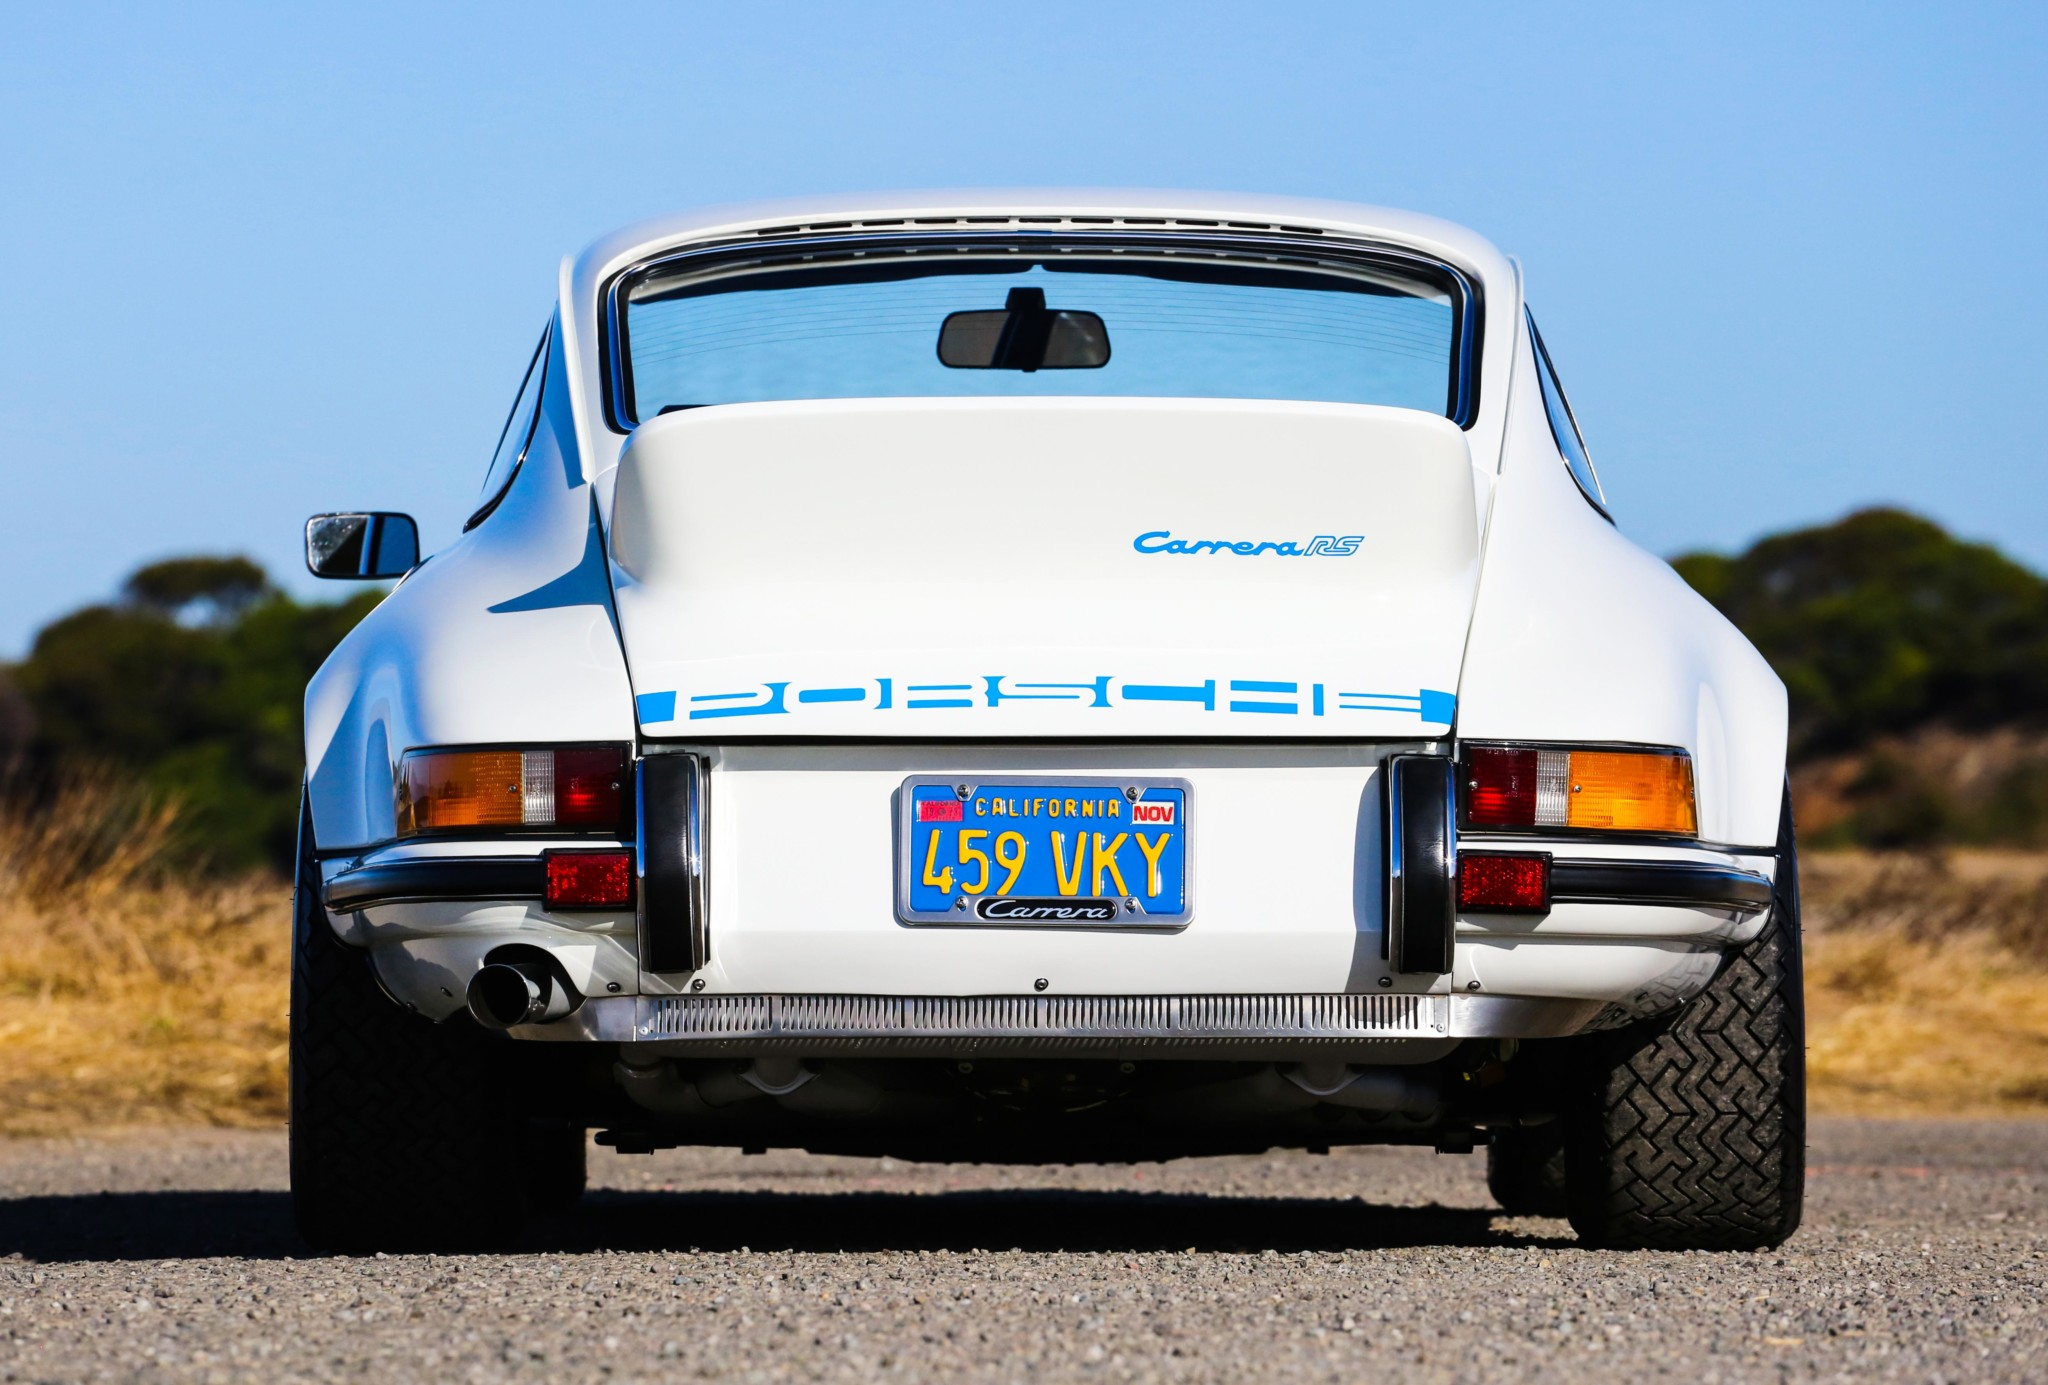 Porsche-911-Carrera-RS-2.7-1973-for-sale-46